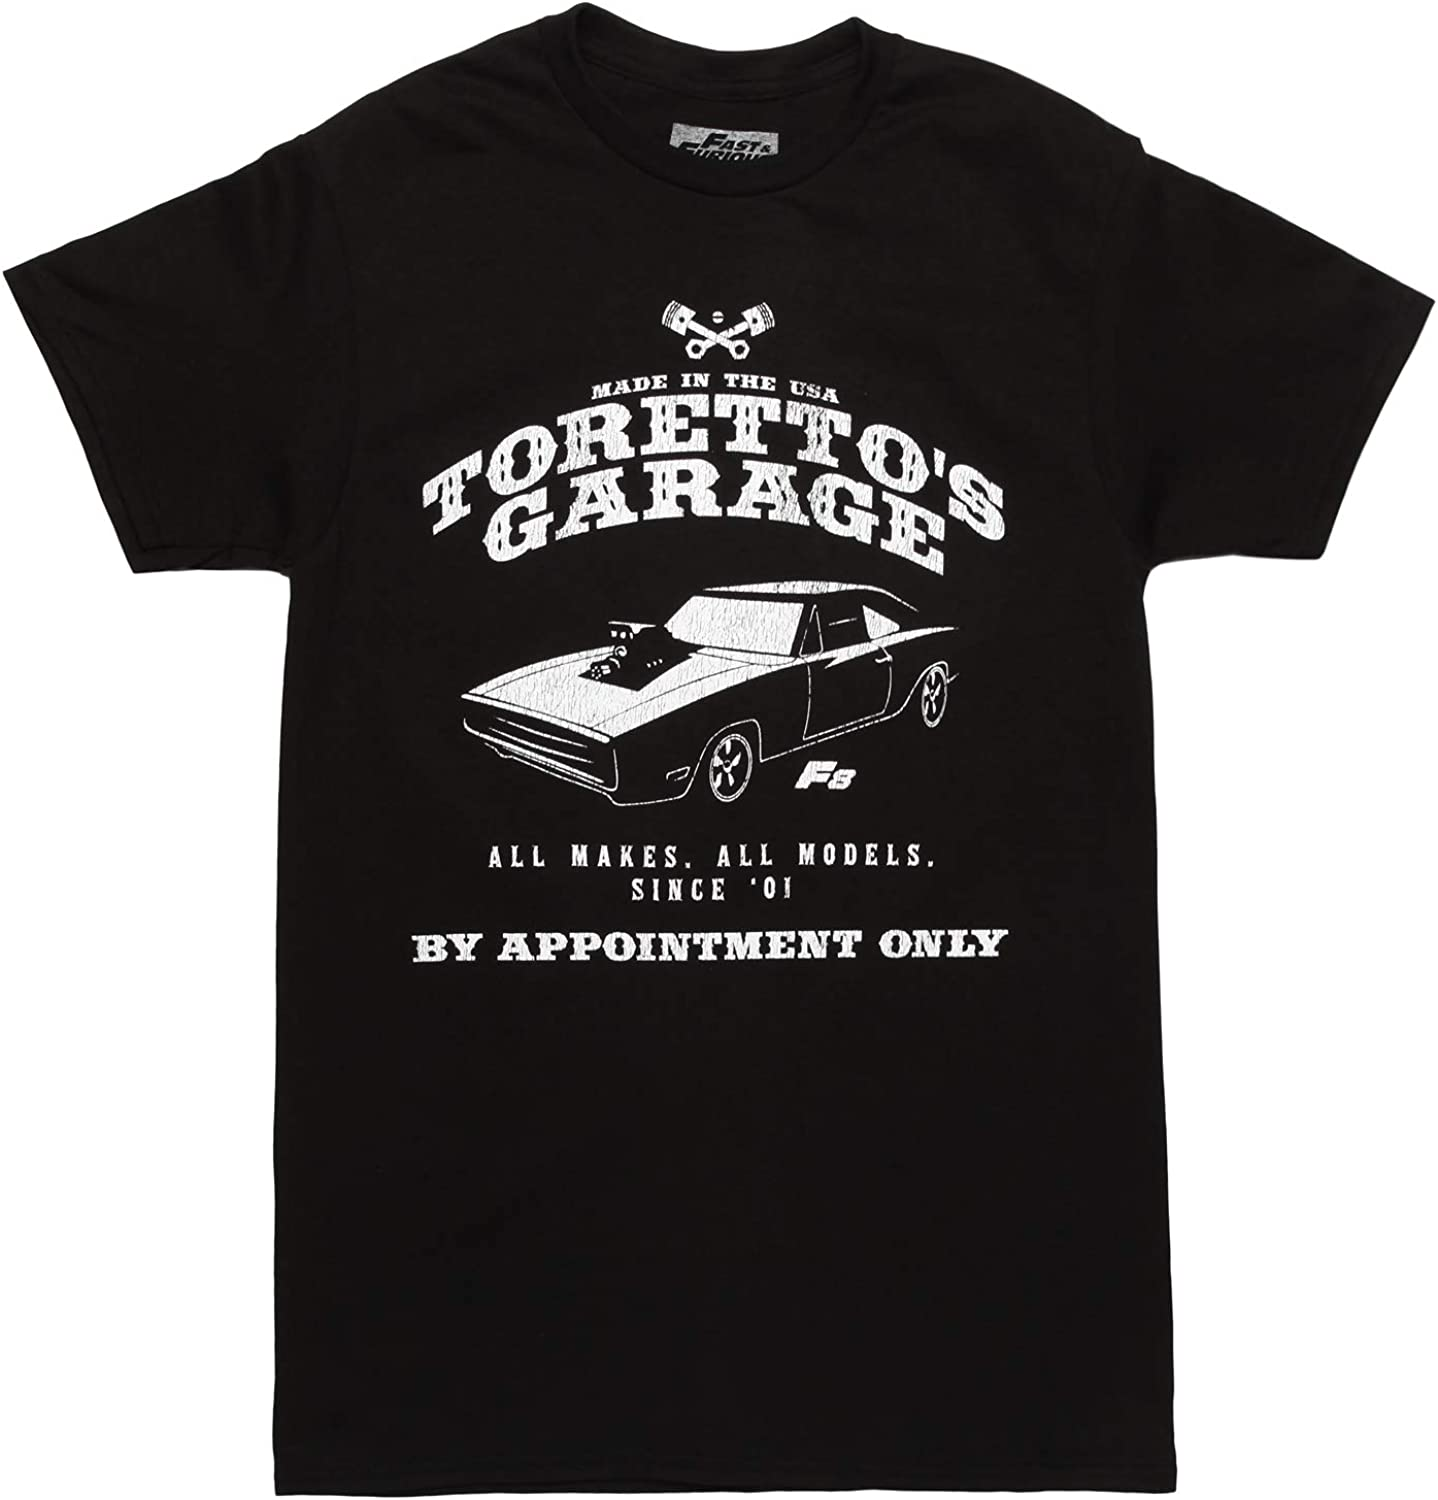 Fast And Furious T-shirt Toretto Tee Car